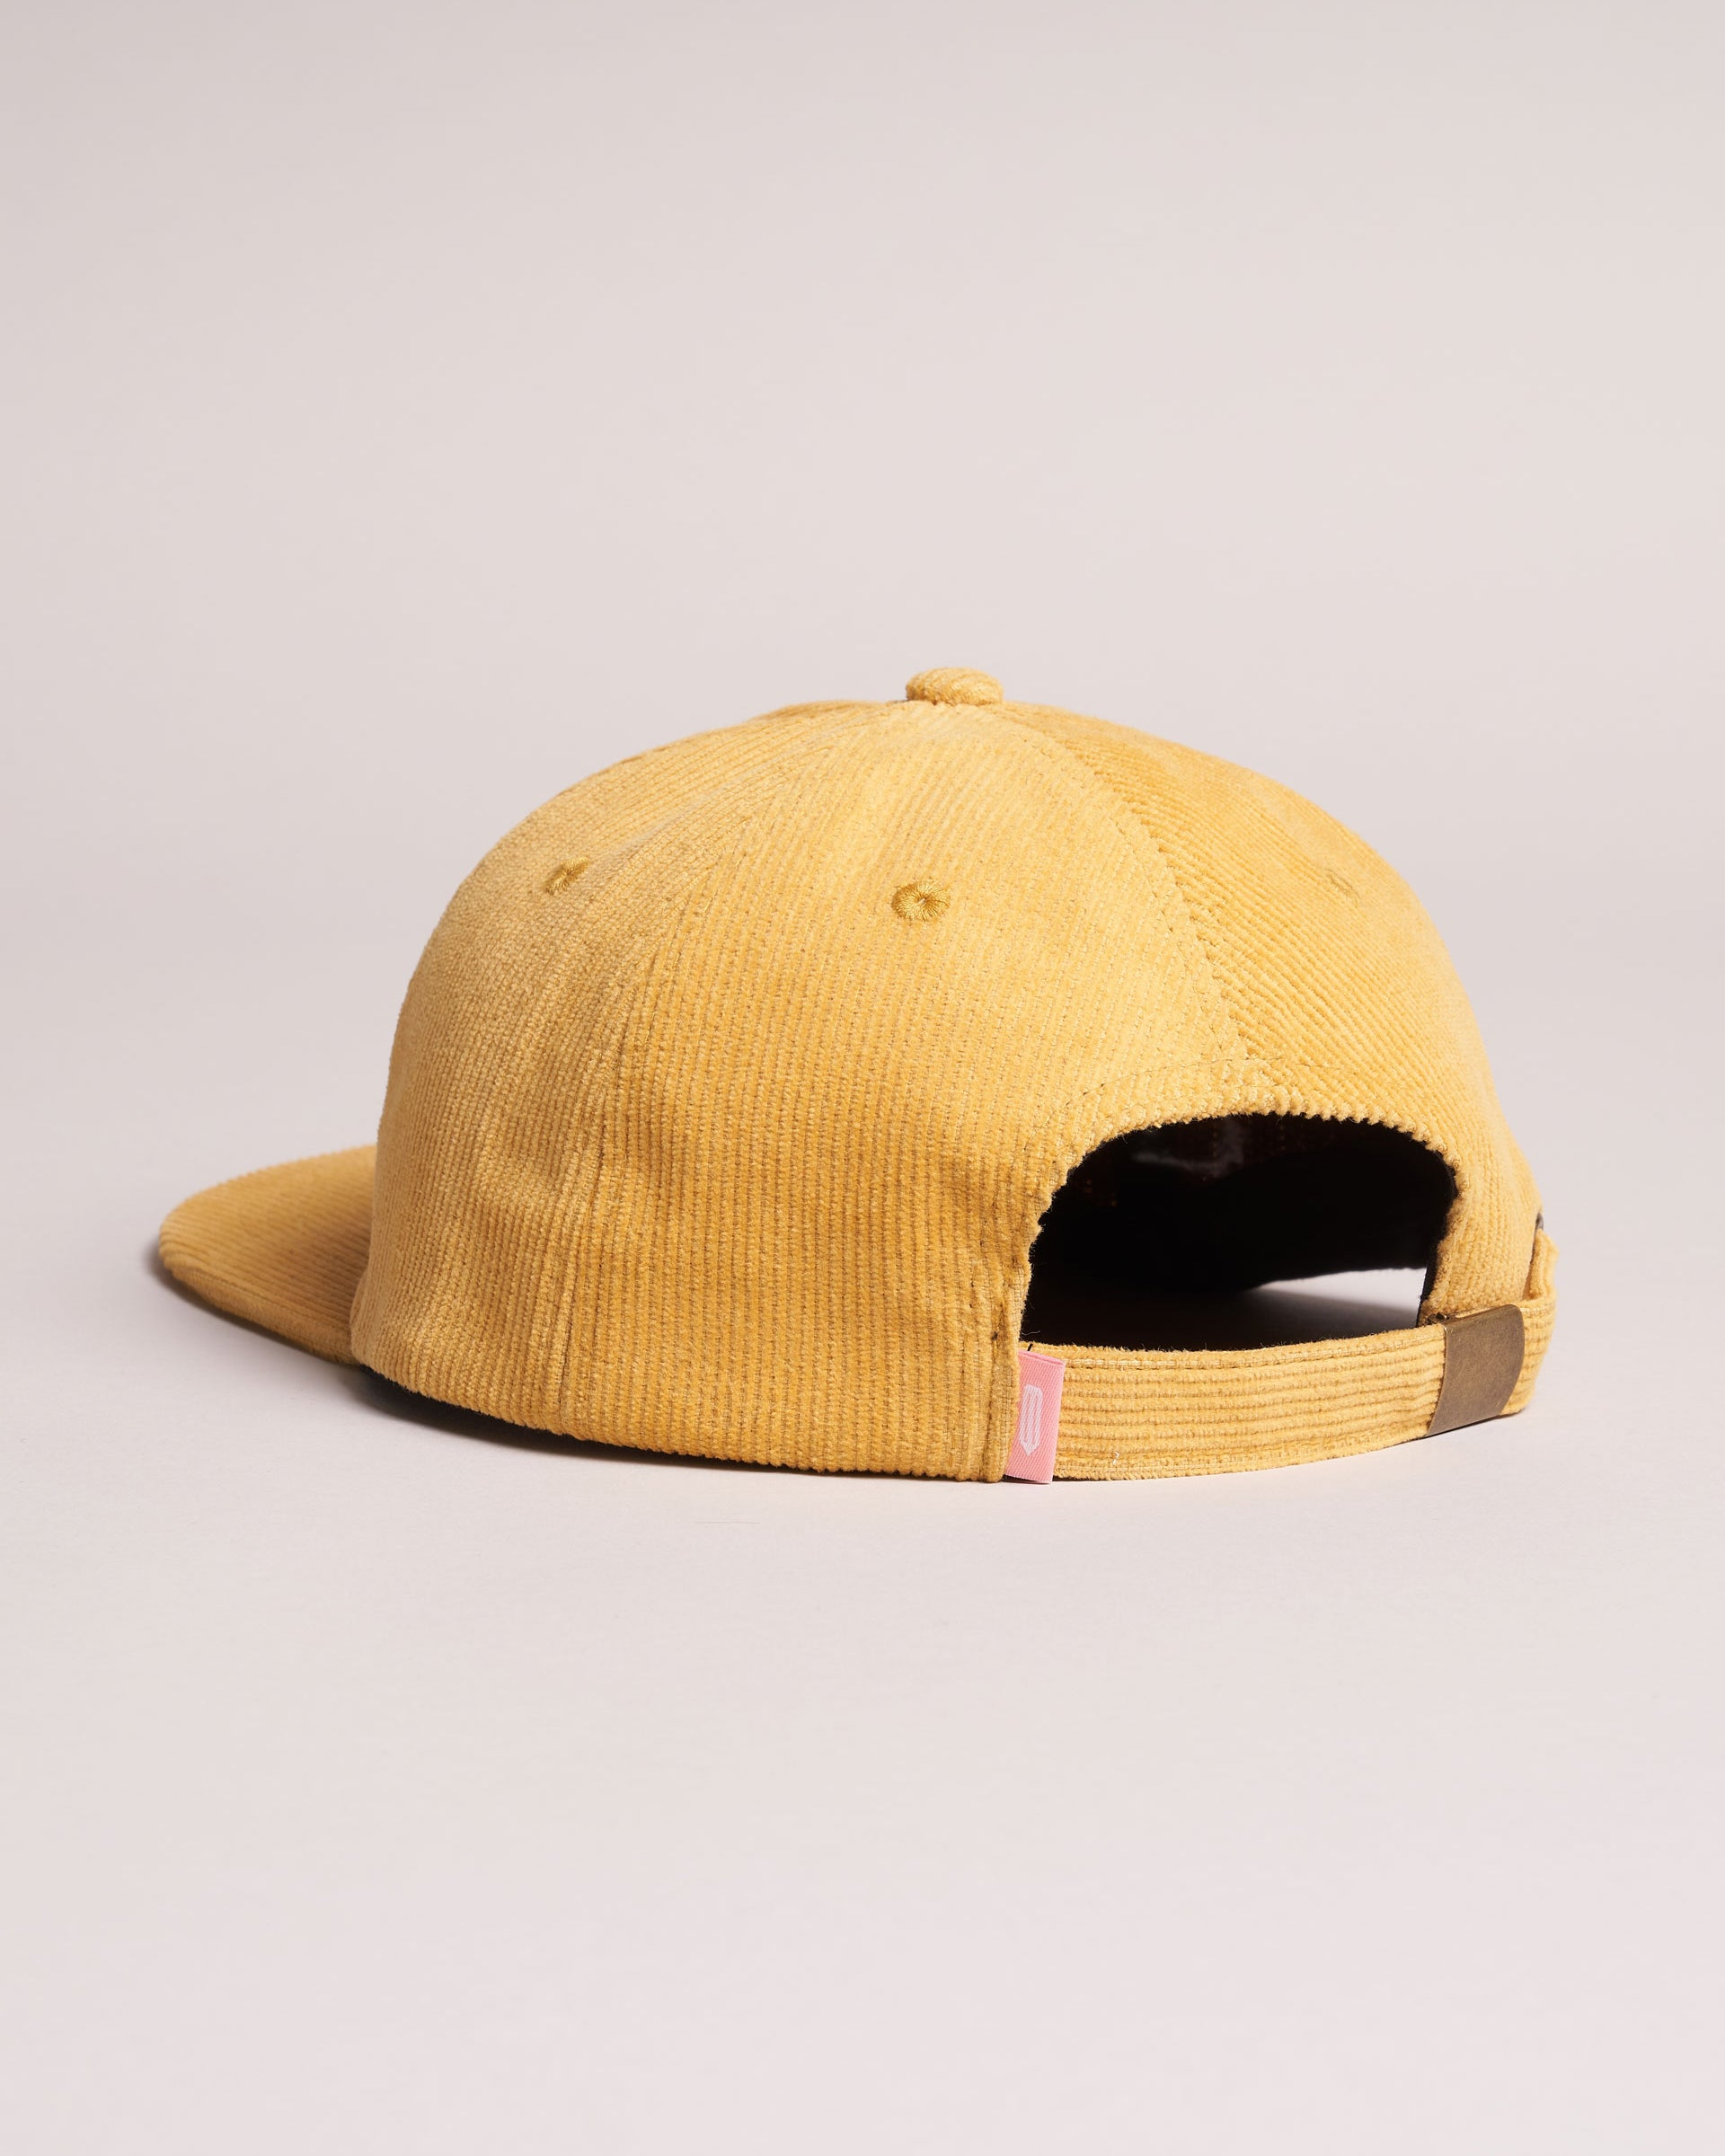 A backside view of an unstructured corduroy cap with a pink tag.